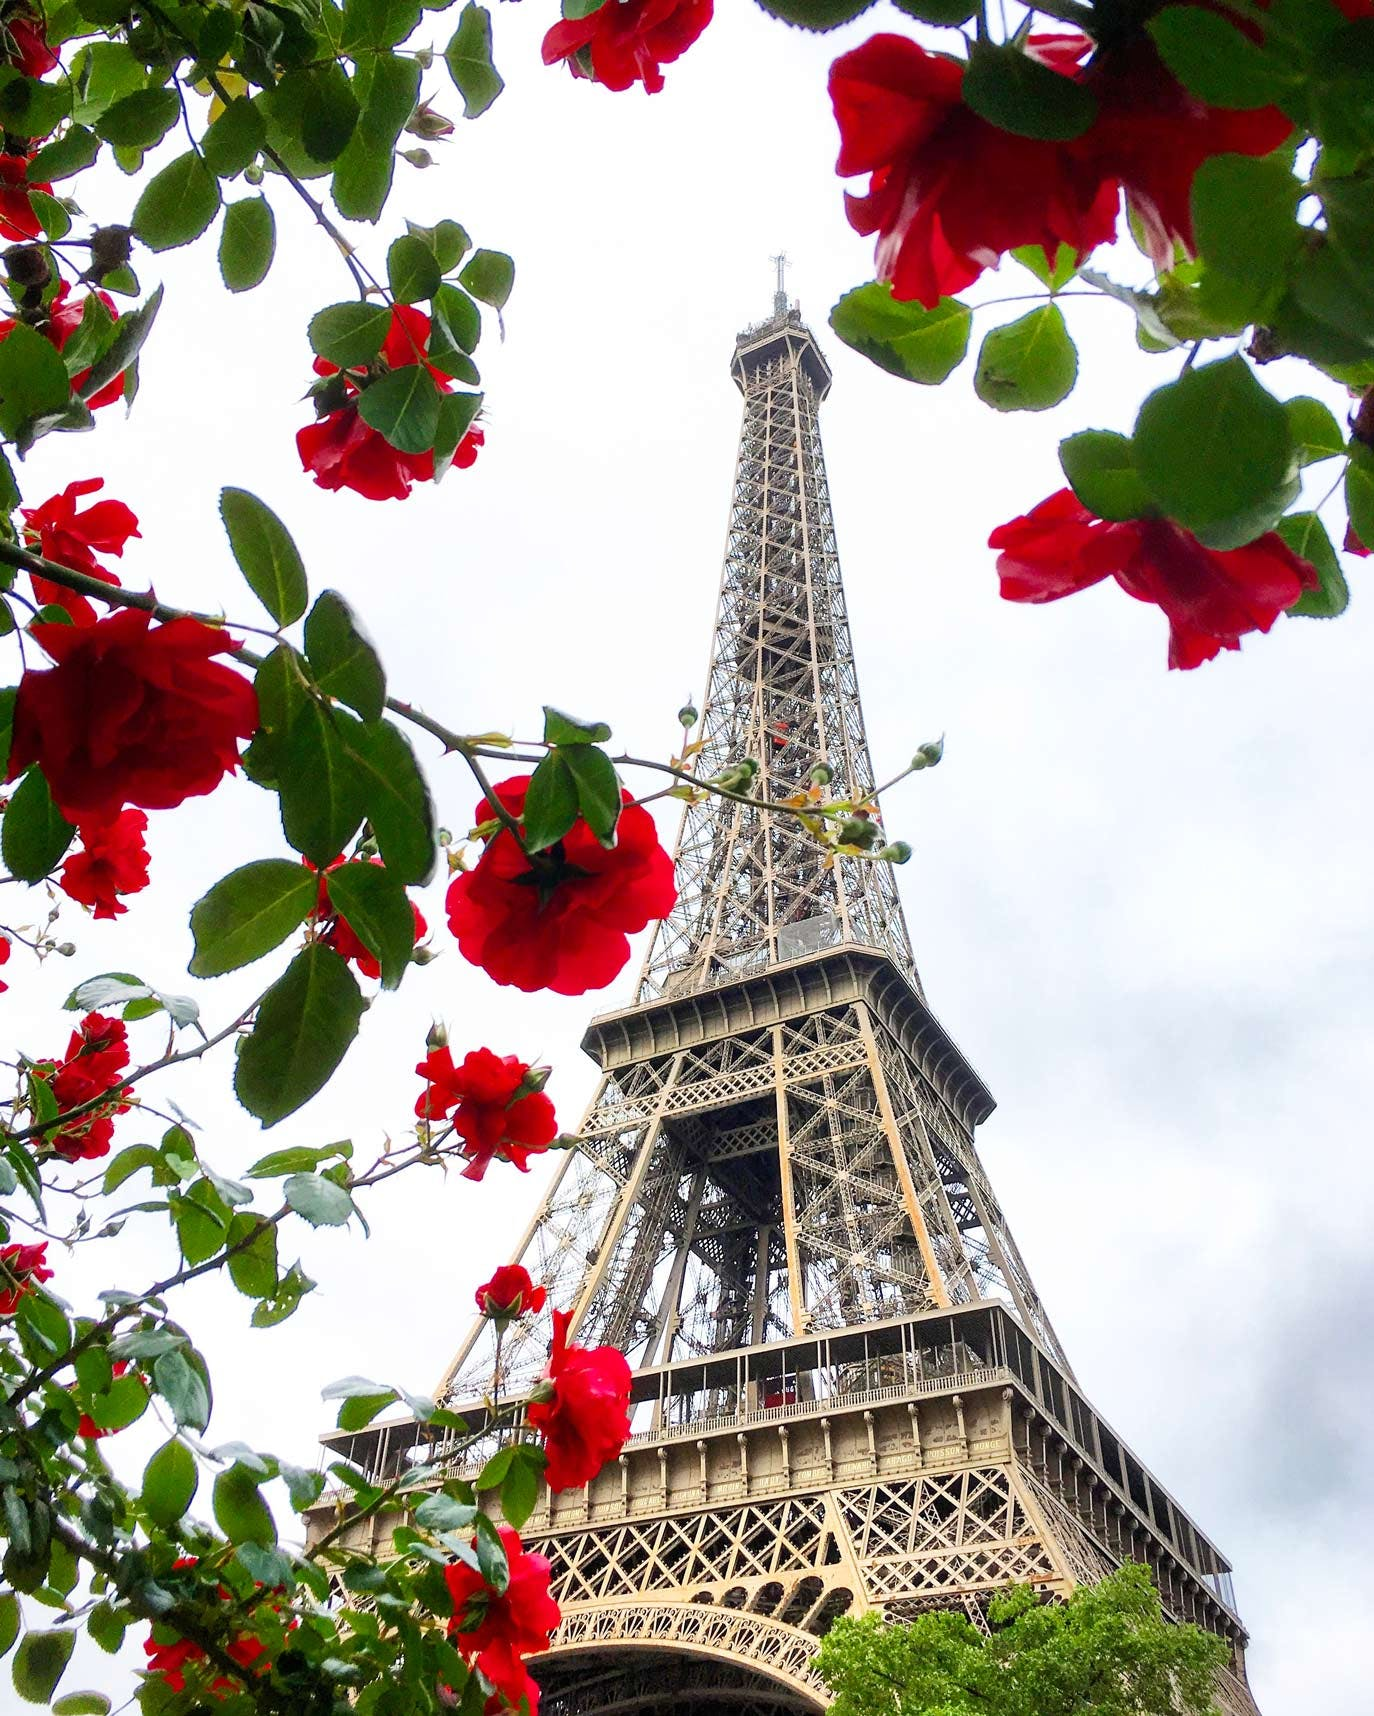 The Eiffel Tower & Red Flowers